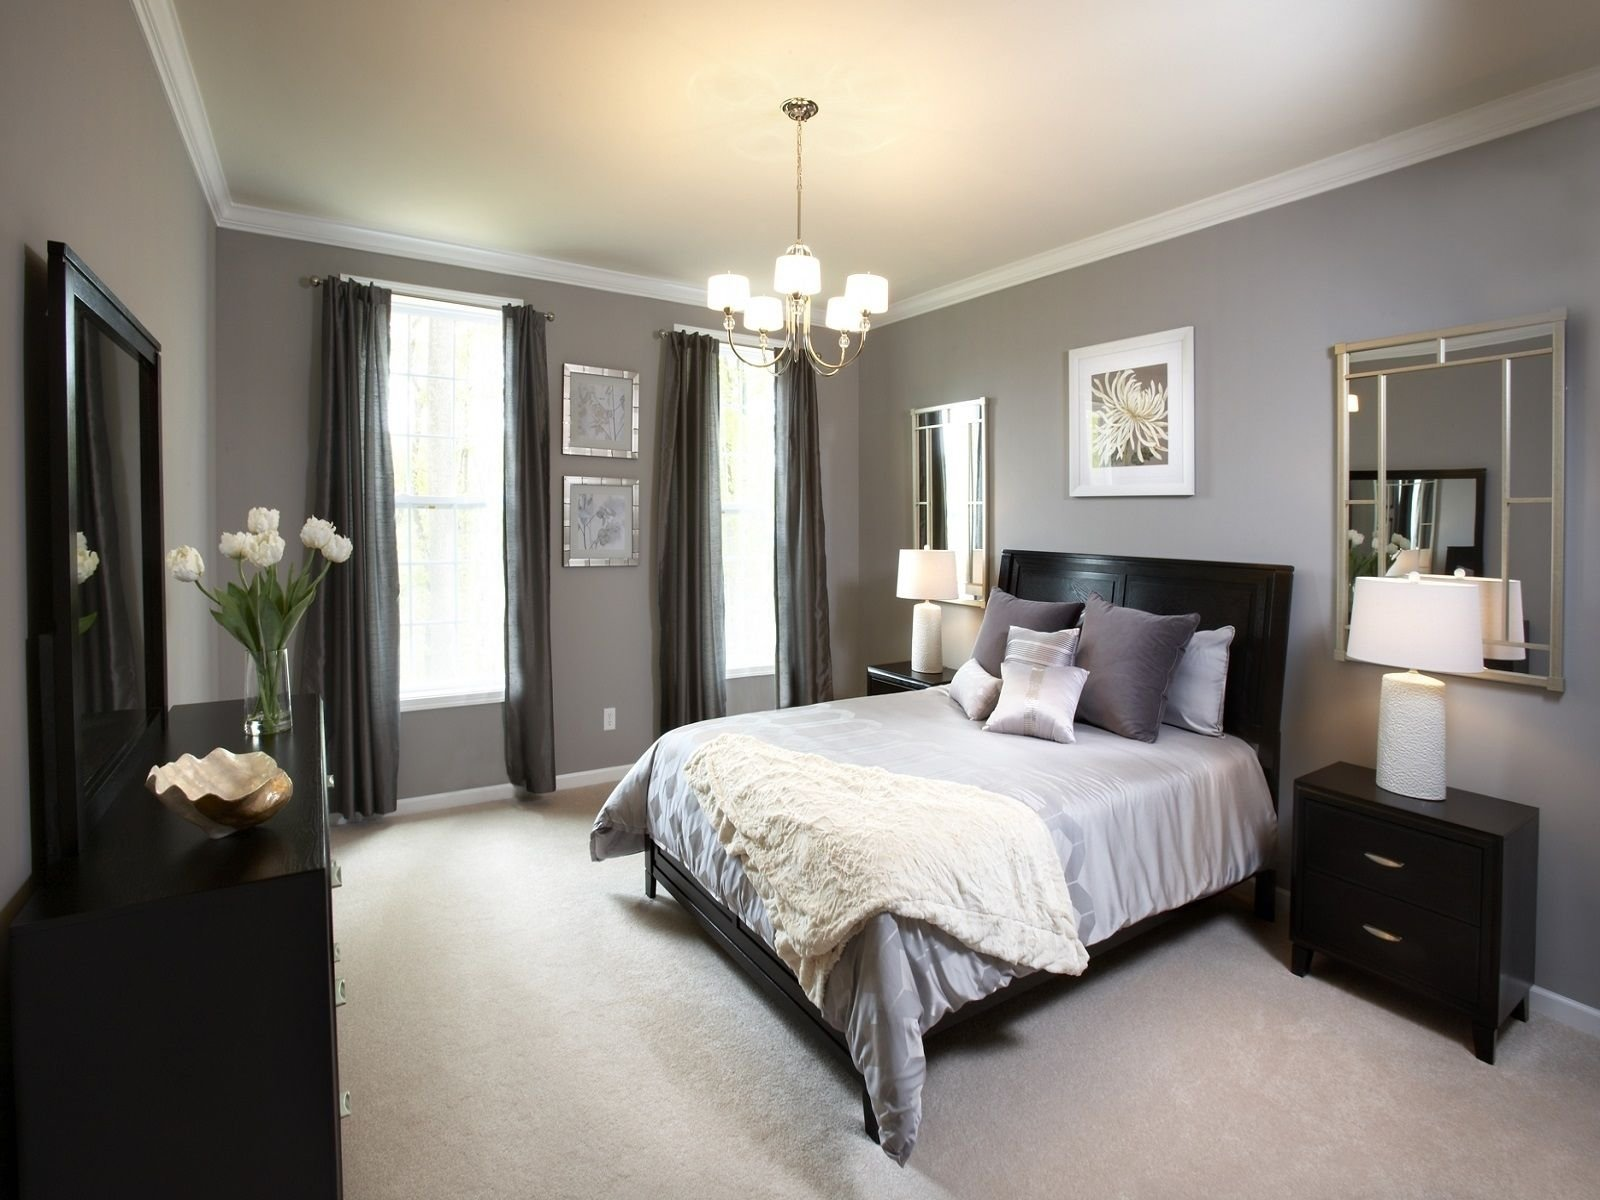 10 Stunning Ideas For Decorating A Bedroom reduced grey bedroom ideas decorating brilliant with black bed and 2020